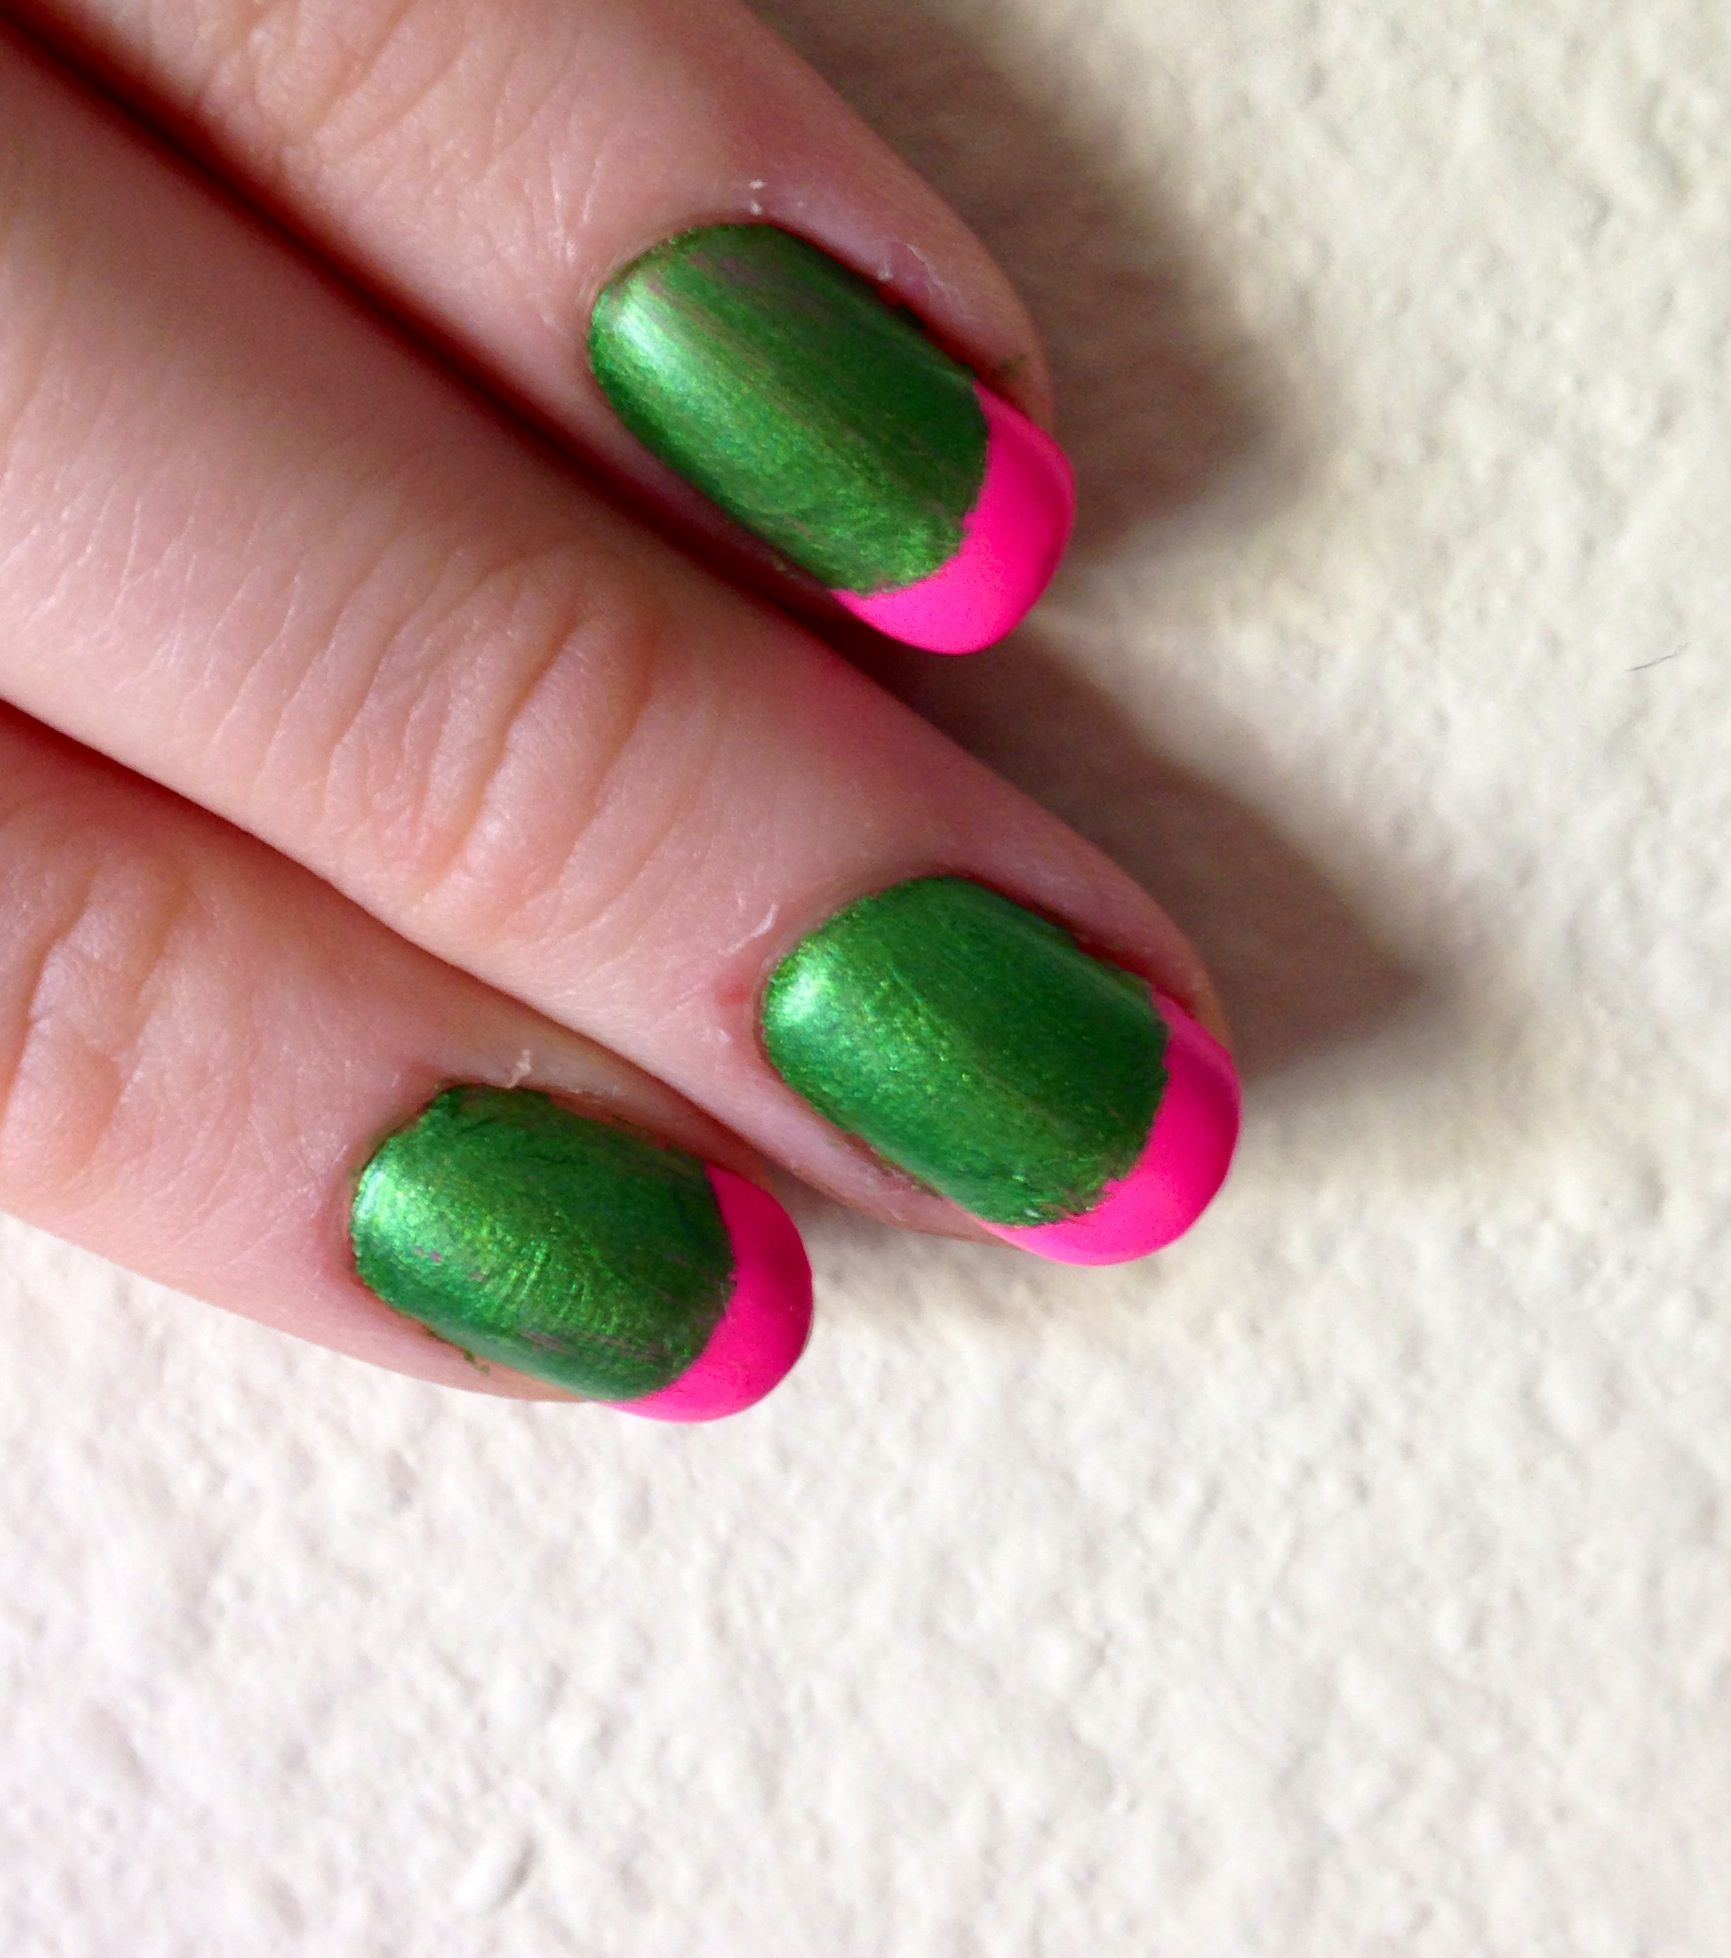 Nails This Week - Pink & Lime French Tips - Nails For Nickels